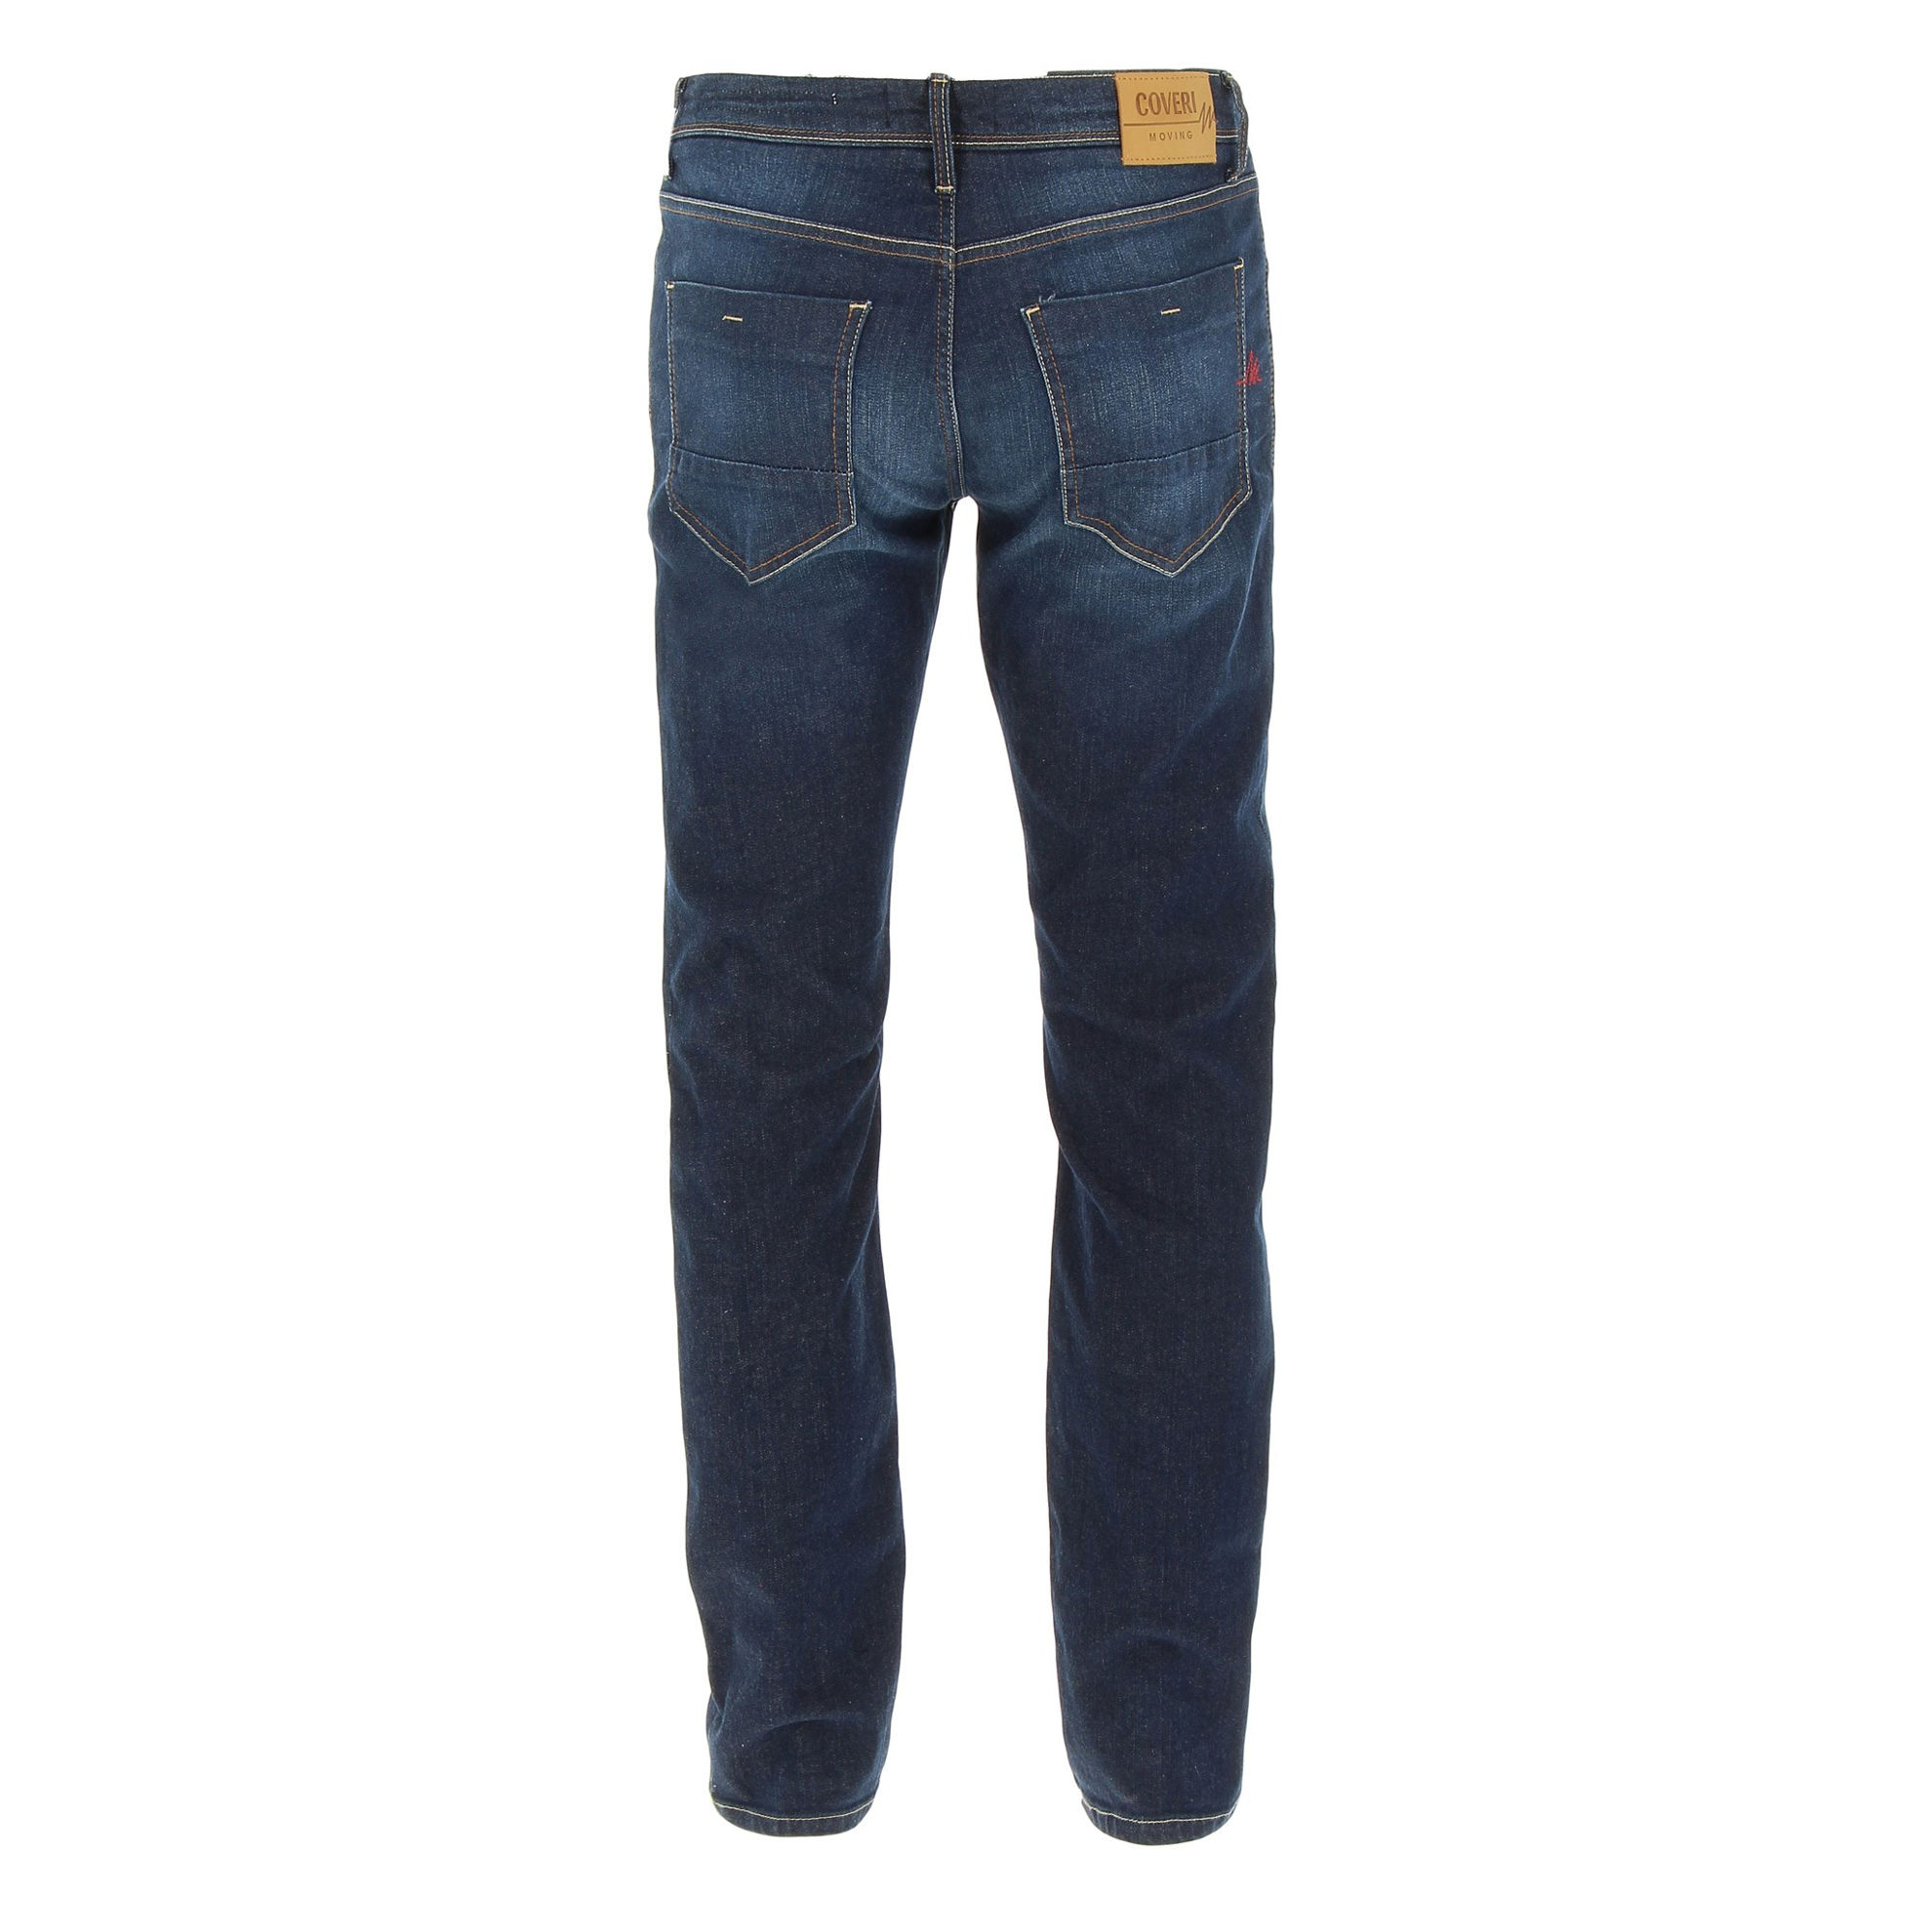 Immagine di COVERI MOVING - JEANS 5 TASCHE SABBIATO MEDIO BLU